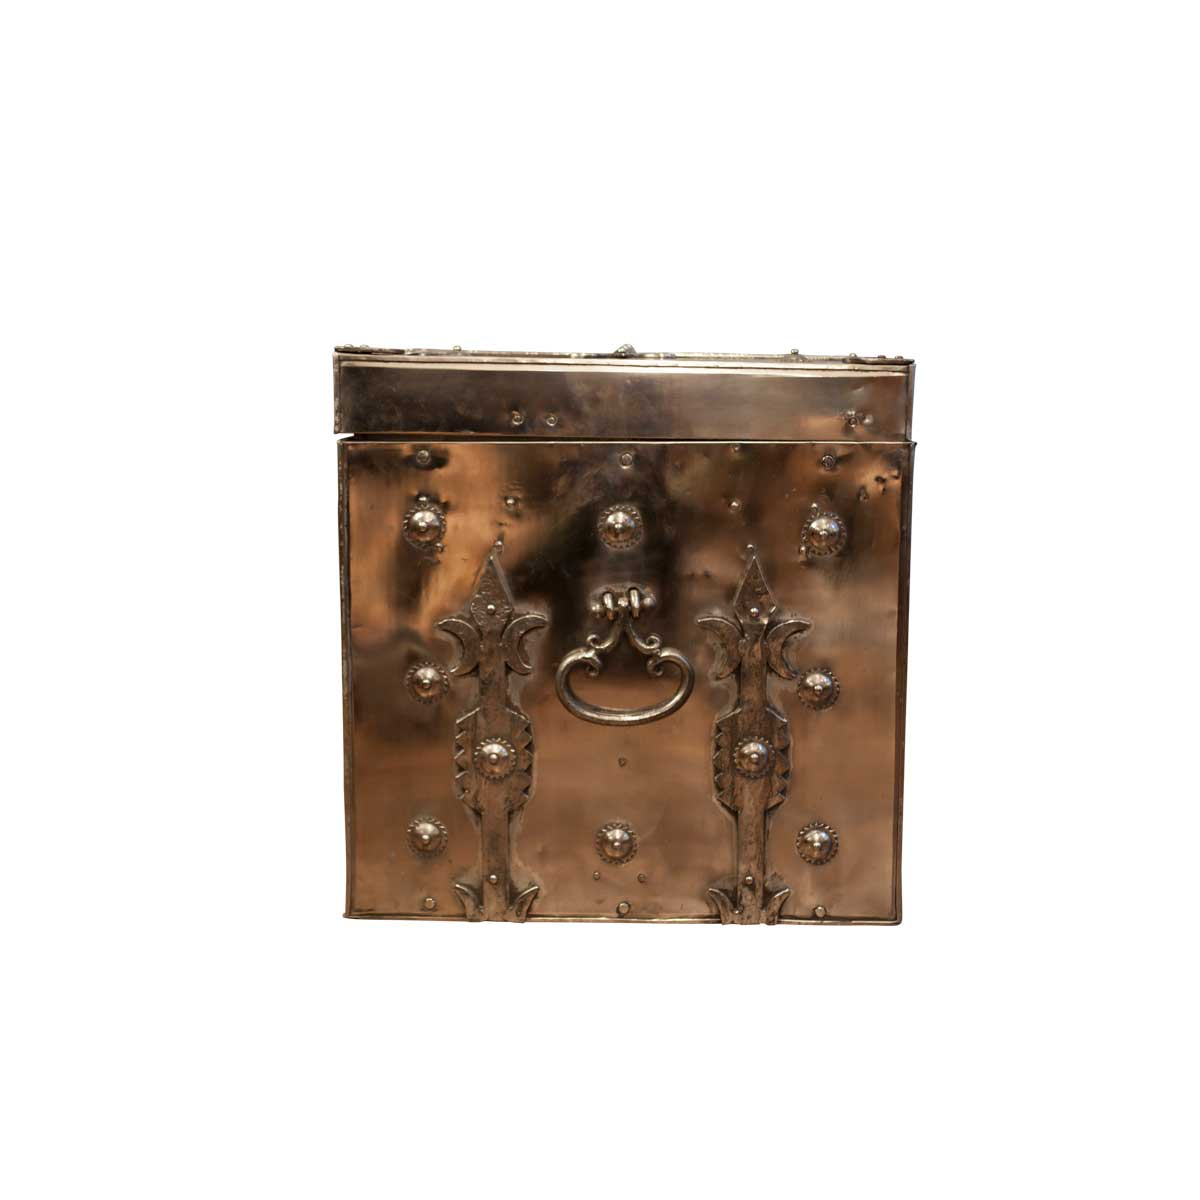 Decorative Polished Steel Trunk, Mid 20th Century.